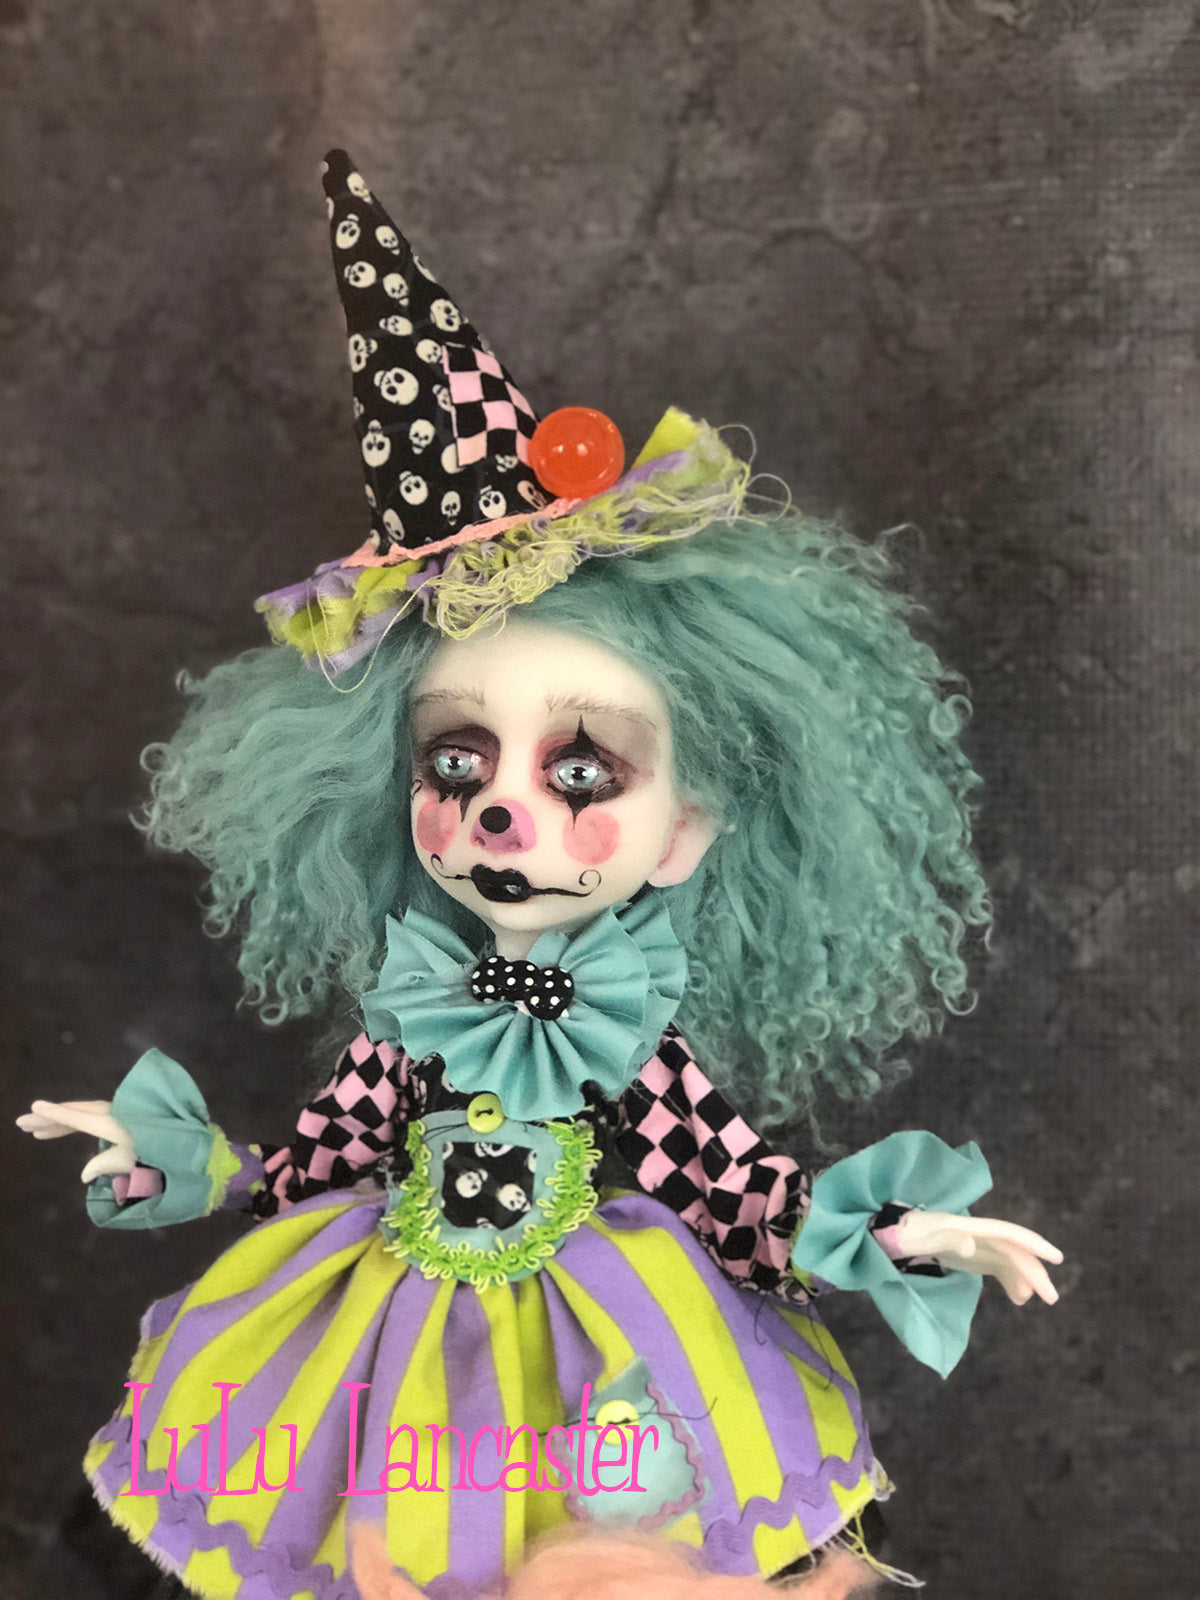 Checkers Poupee the clown and Cotton Candy Original sculpt Art Doll by LuLu Lancaster